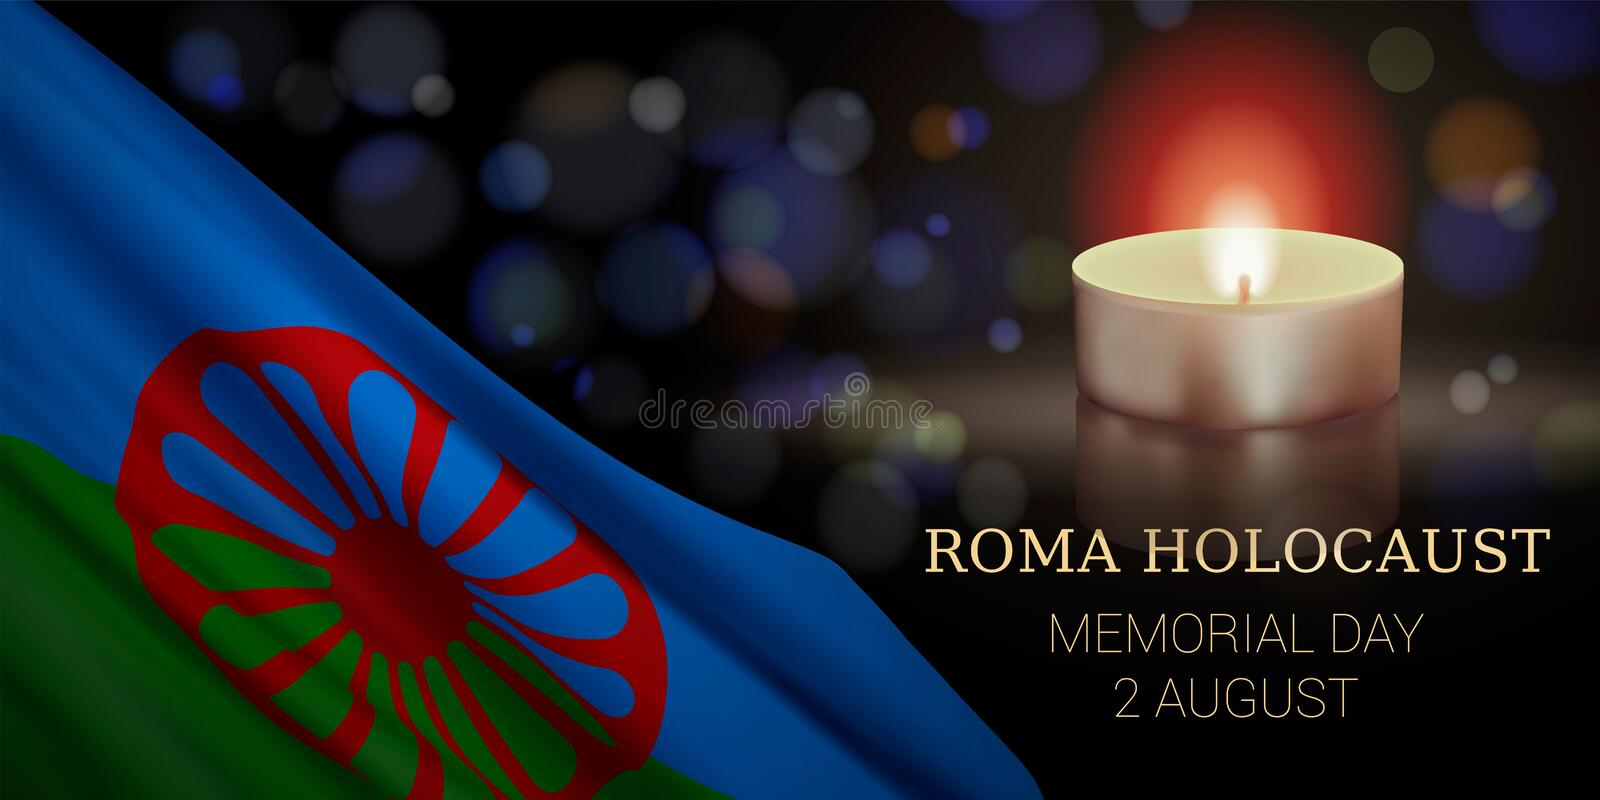 Roma Holocaust Memorial Day, August 2. vector illustration